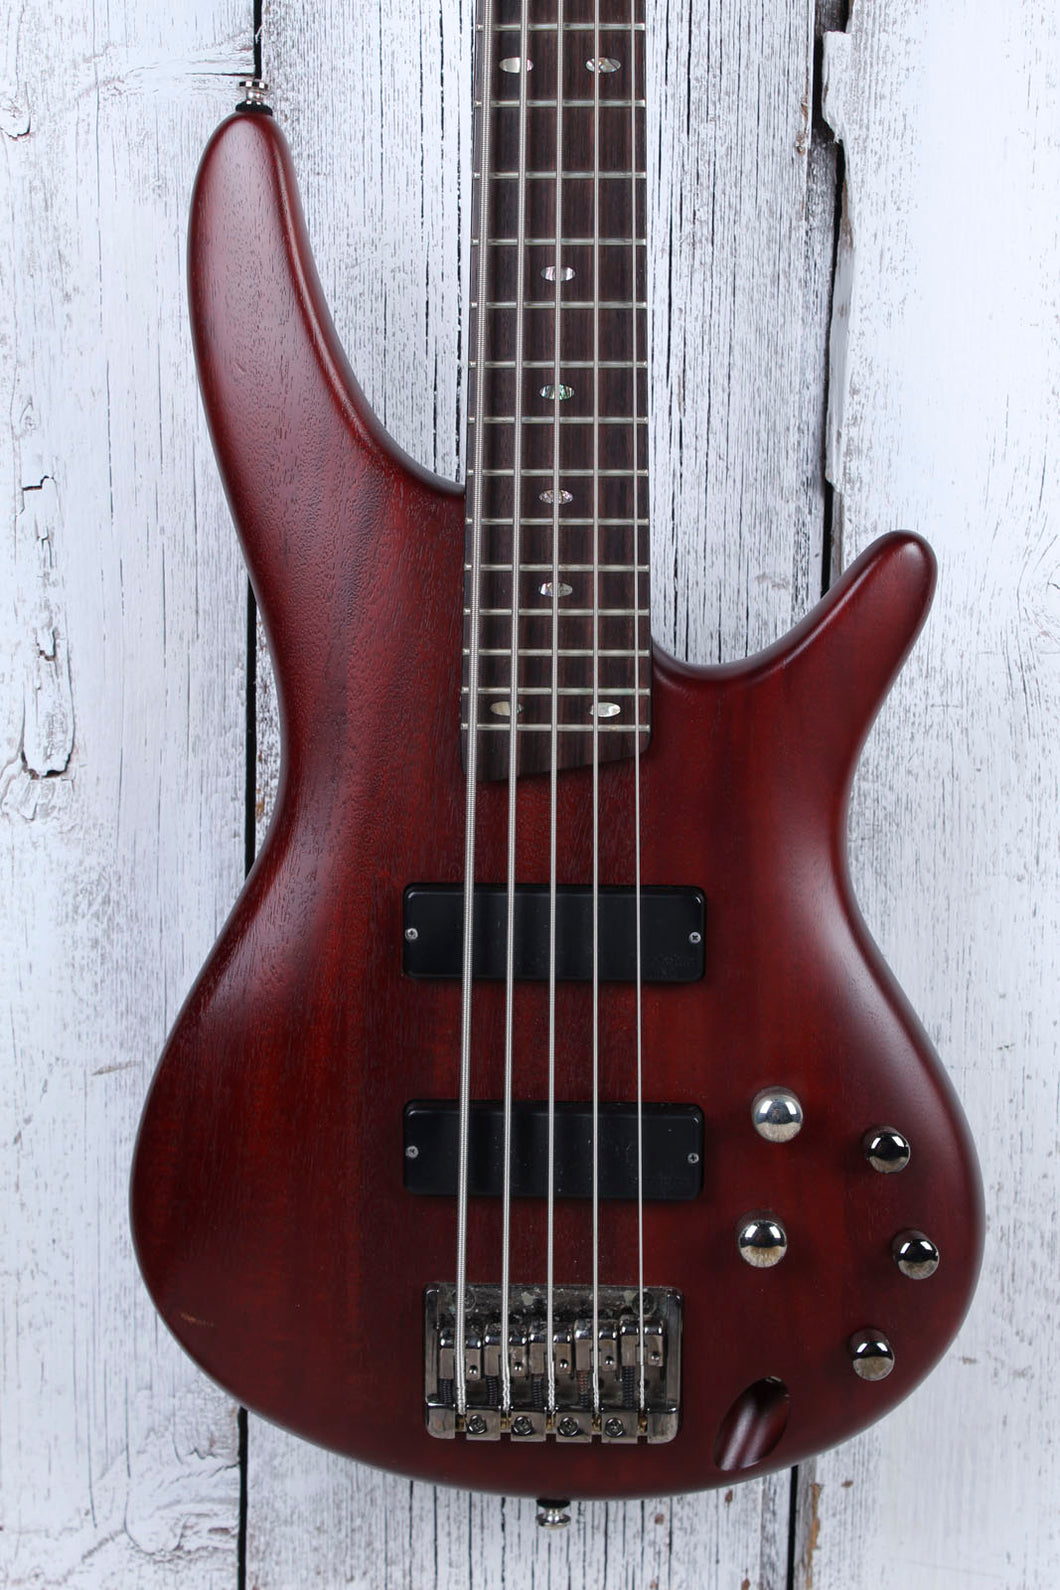 Ibanez Soundgear SR505 5 String Electric Bass Guitar with Hardshell Case